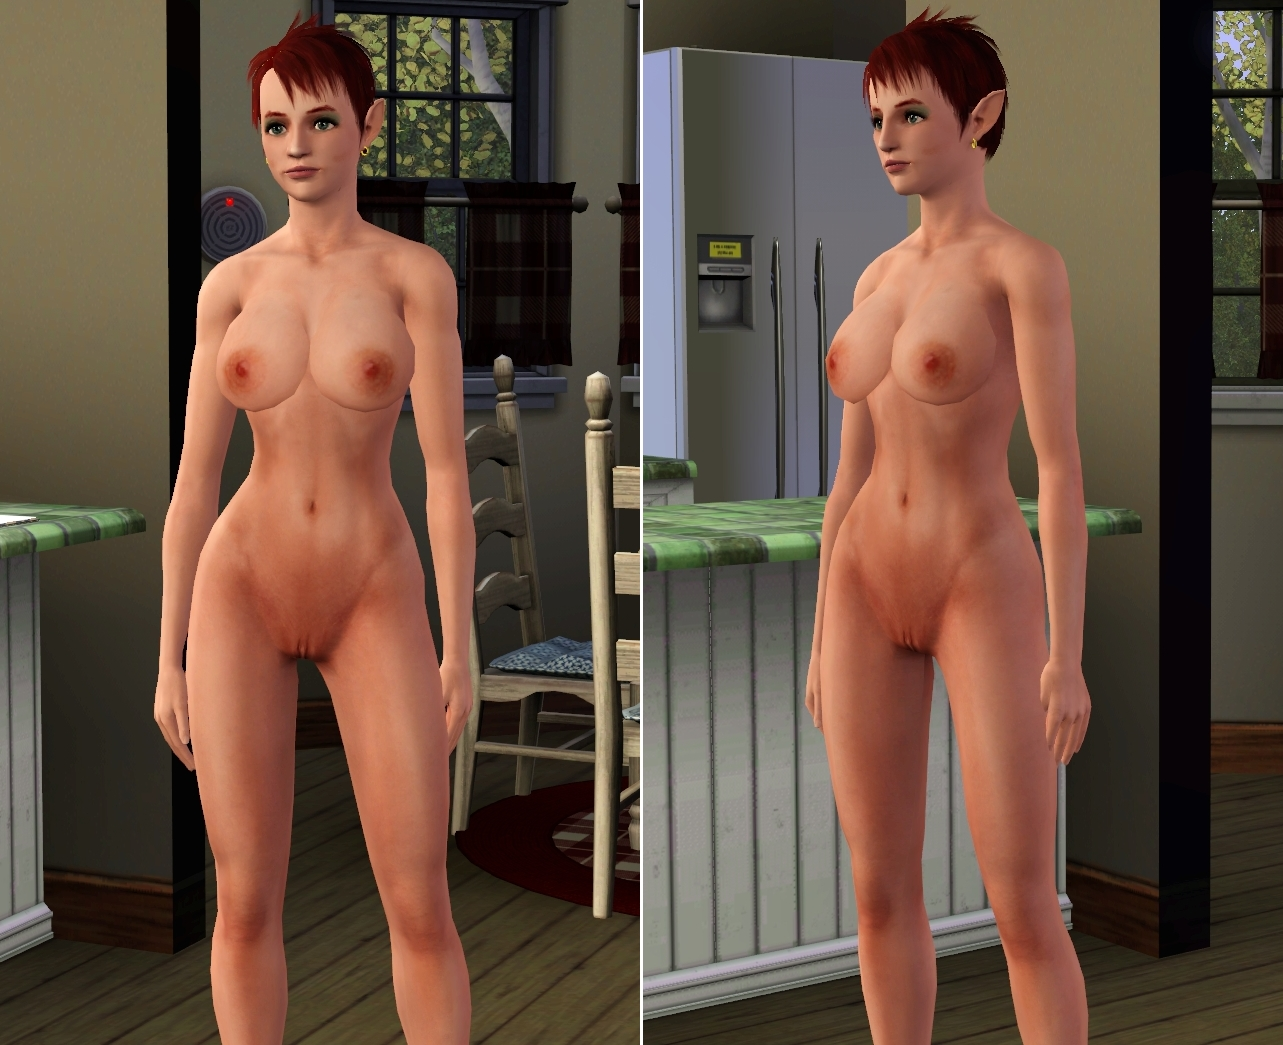 Sims3 nude sikns nudes video